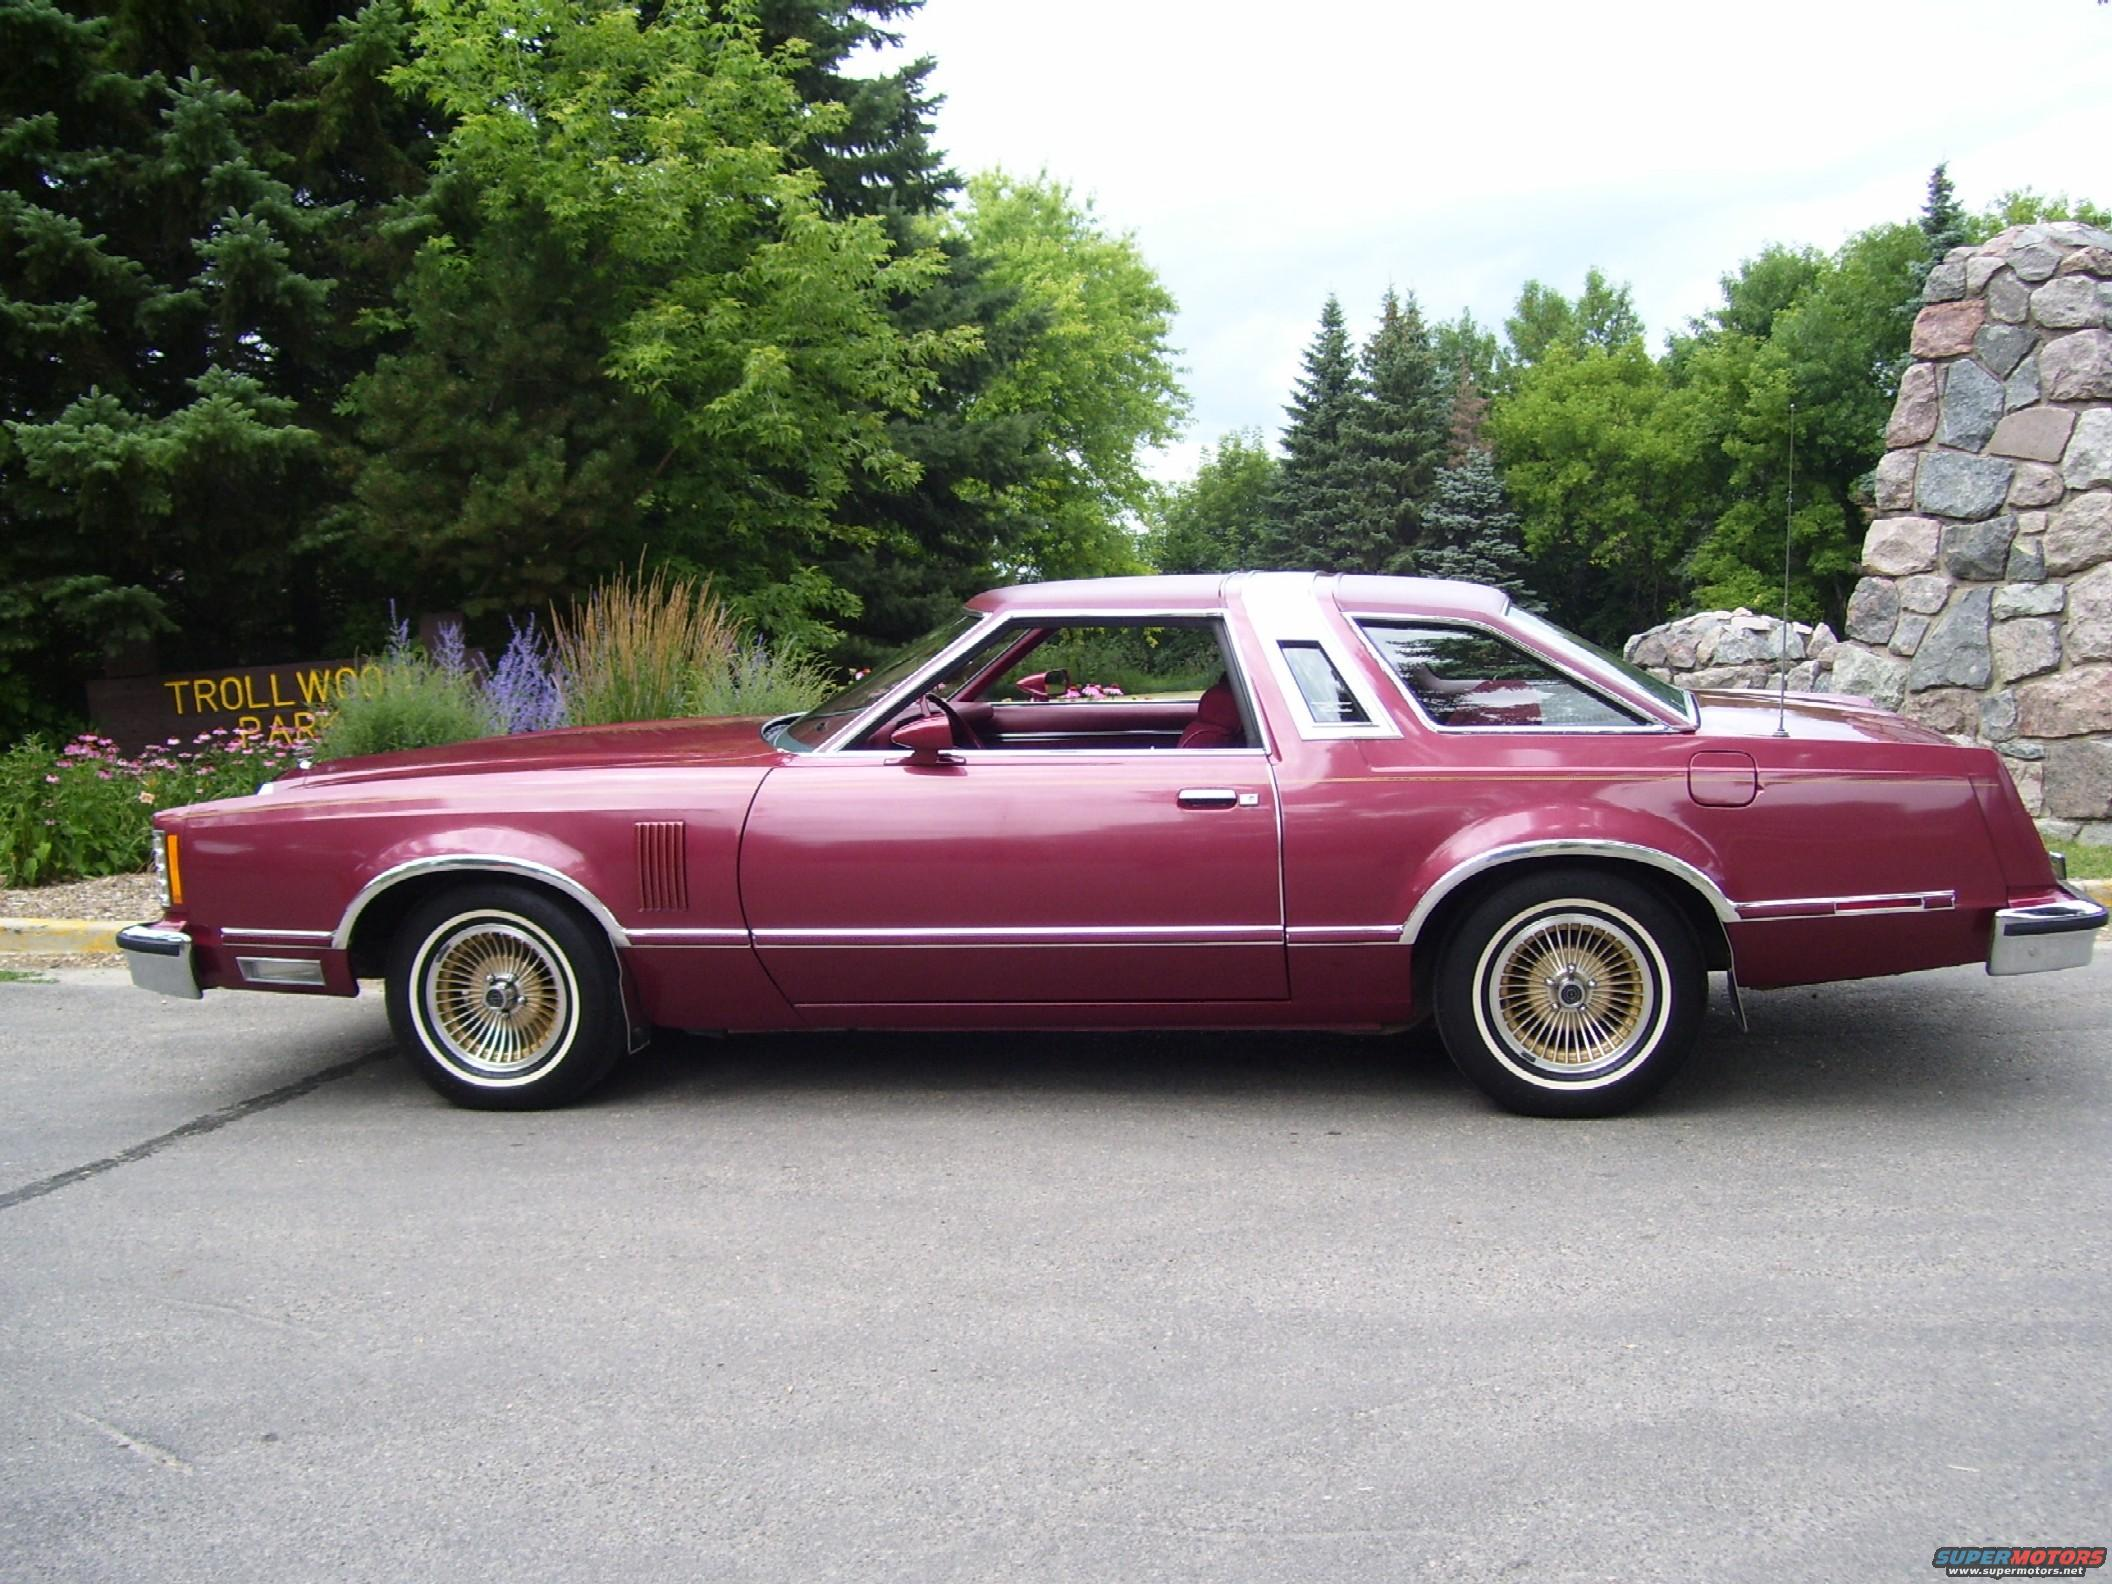 1979 Ford Thunderbird T-Bird pics picture | SuperMotors.net